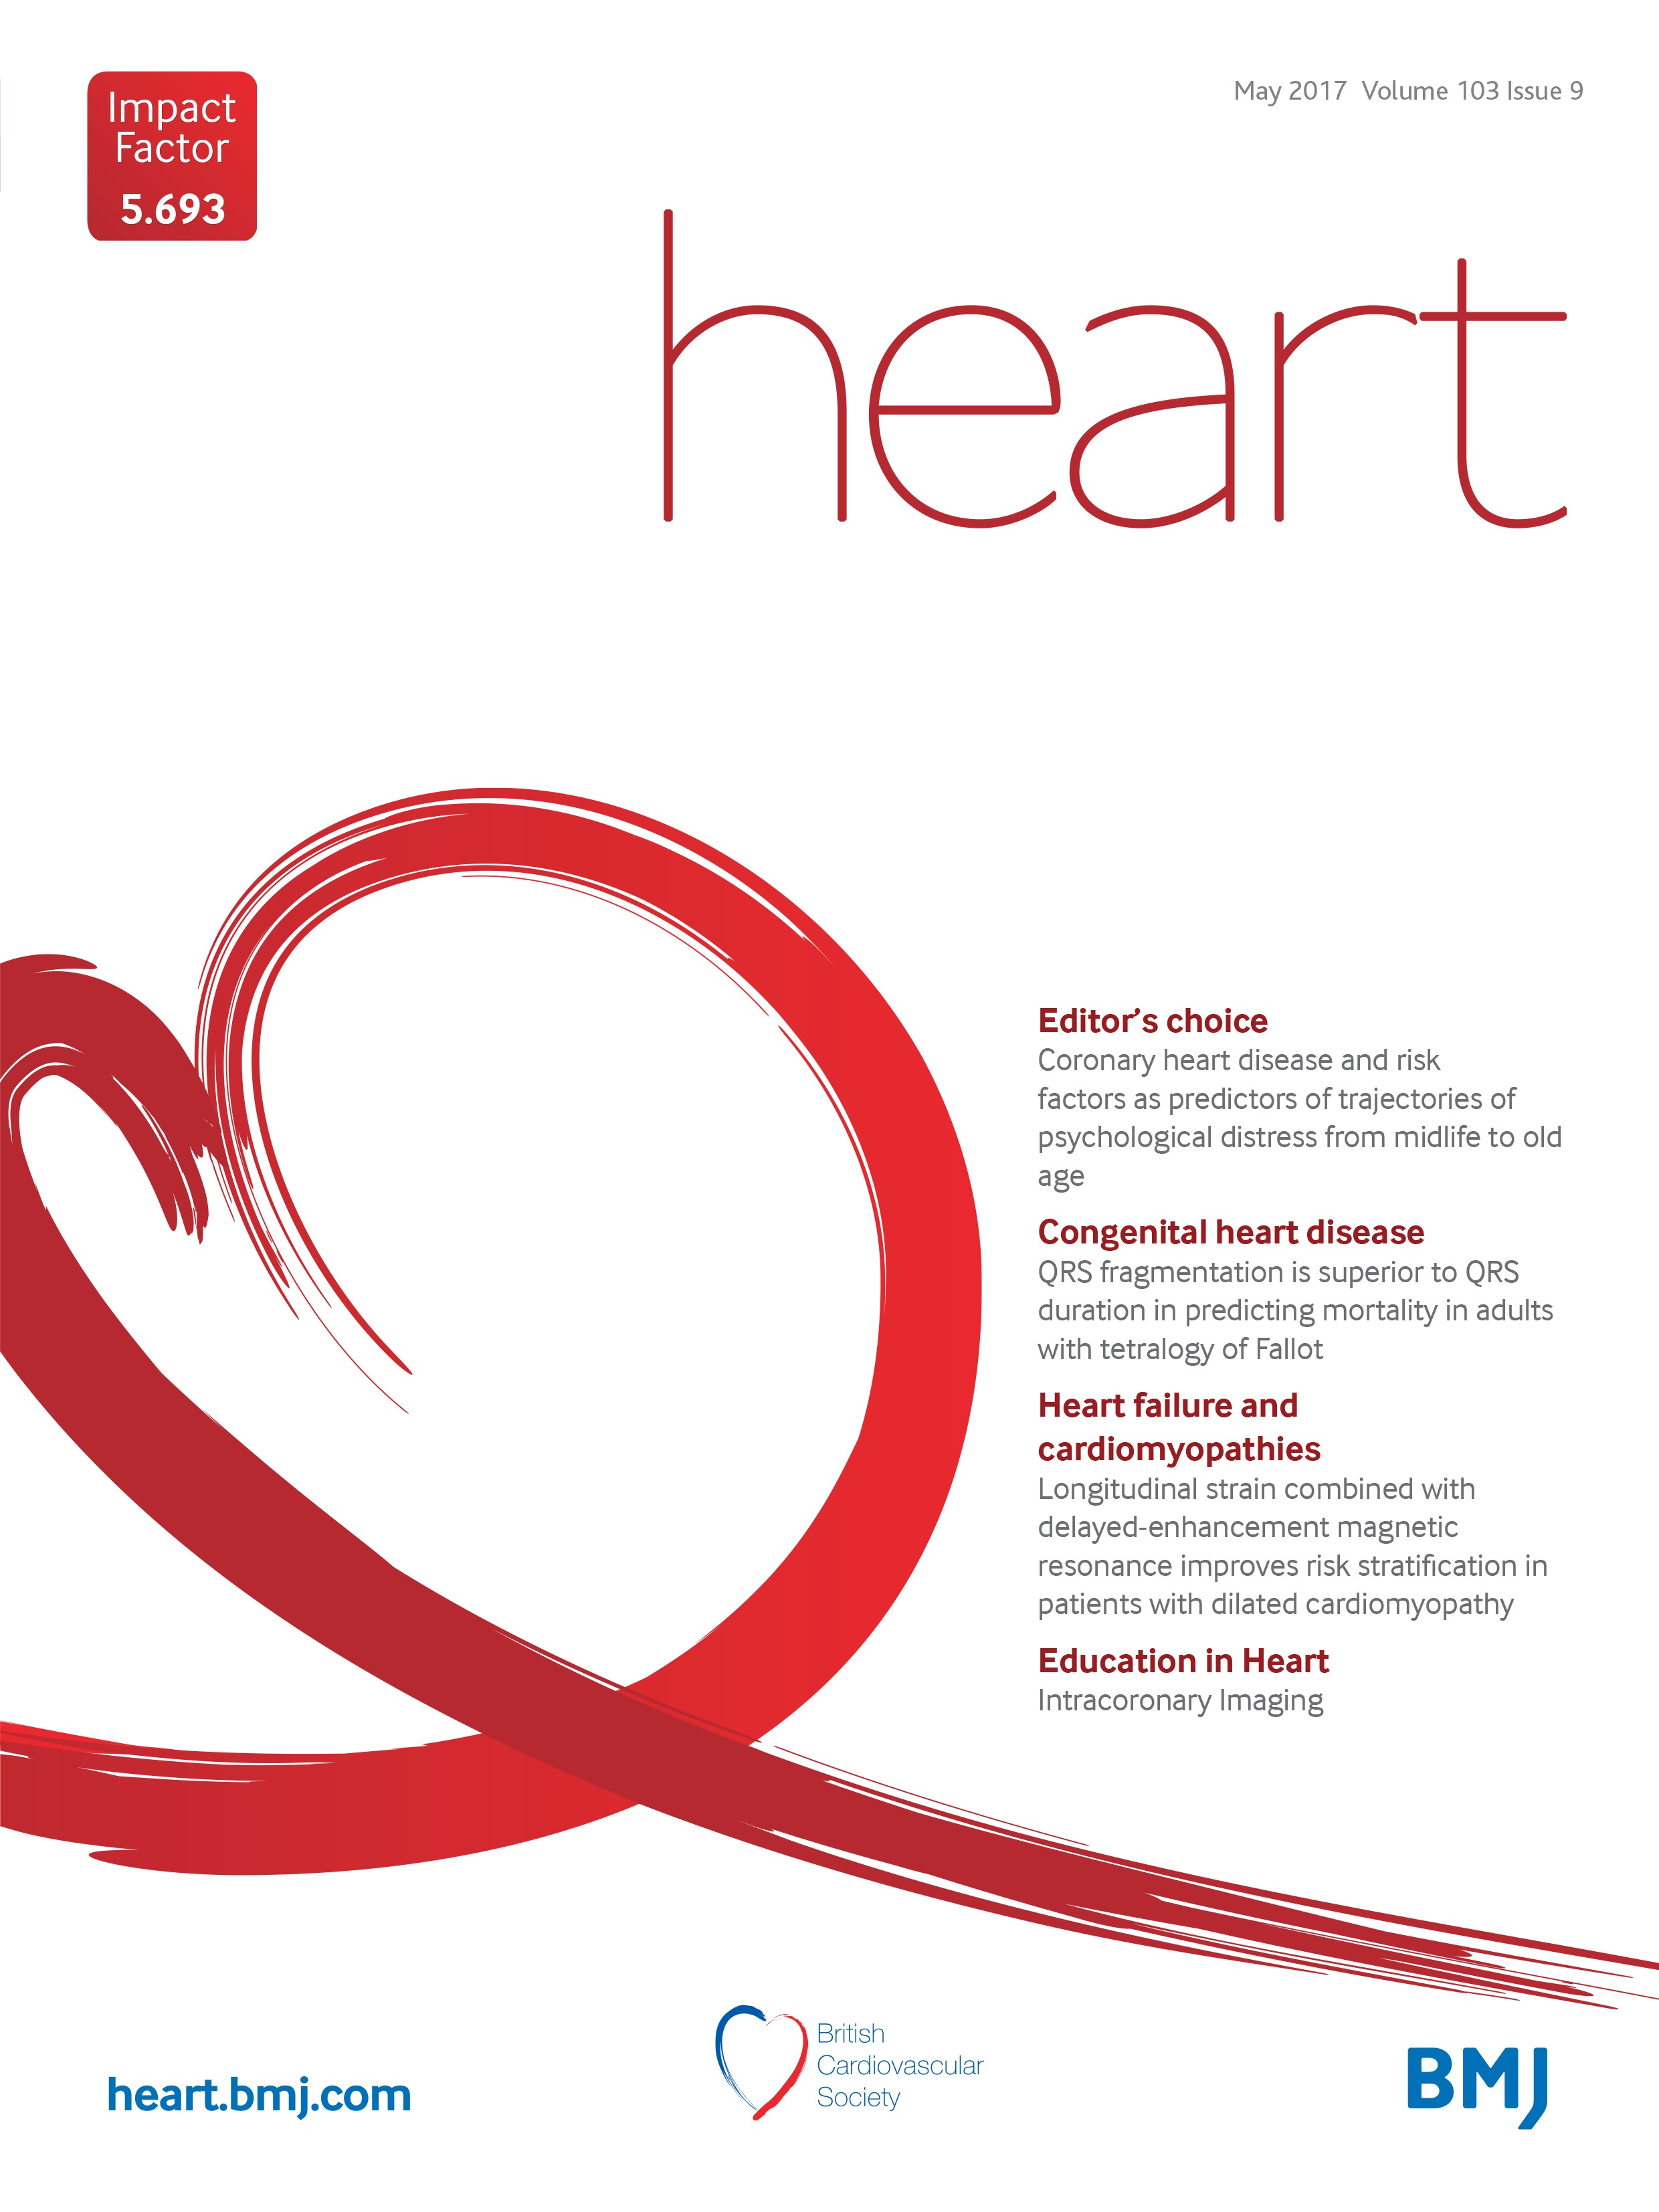 Sexual problems in elderly male and female patients with heart failure